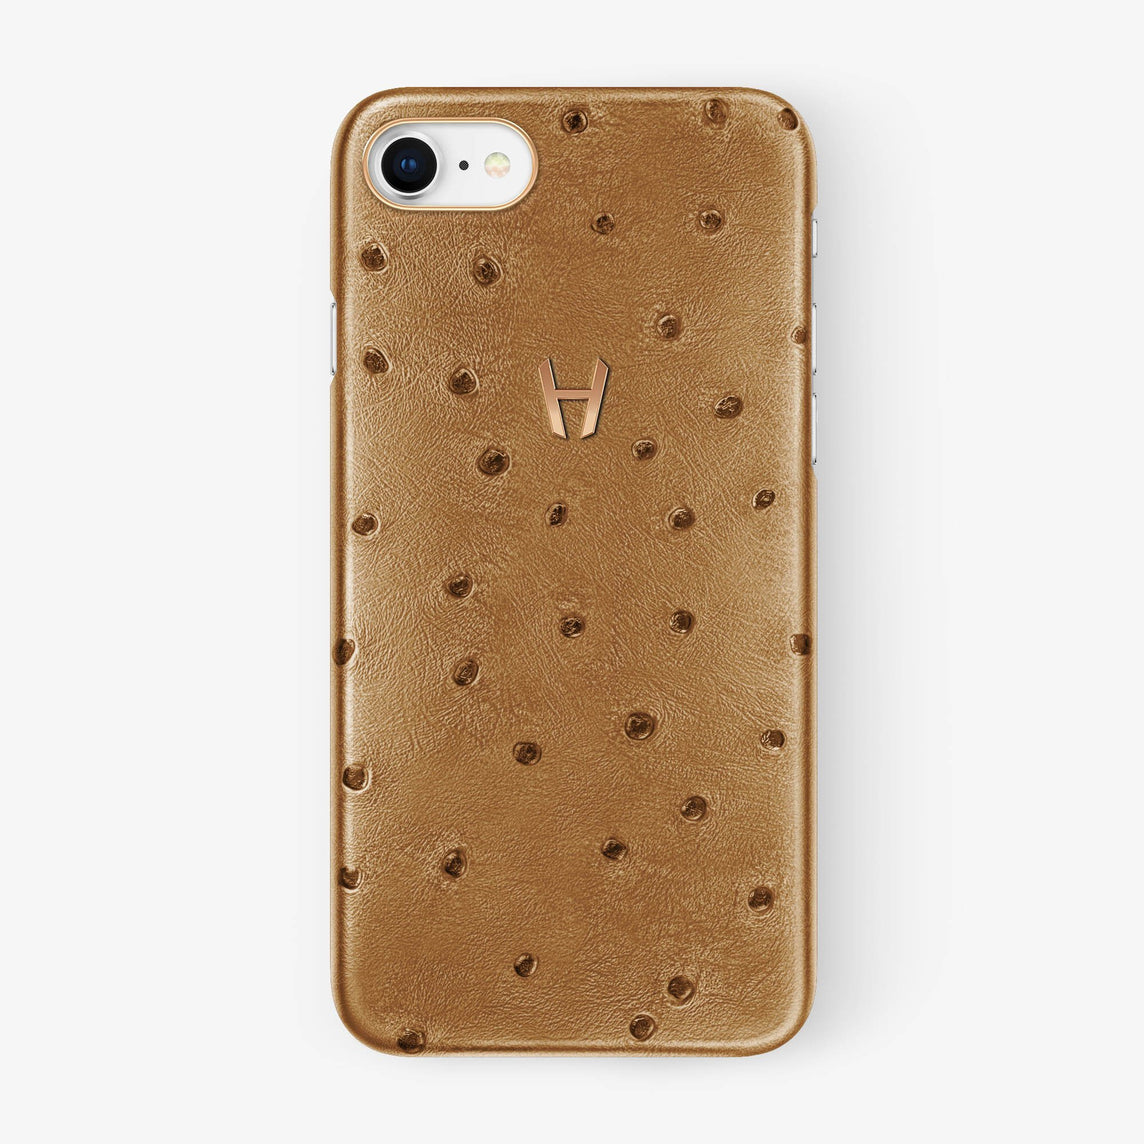 Chestnut Ostrich iPhone Case for iPhone 7/8 finishing rose gold - Hadoro Luxury Cases